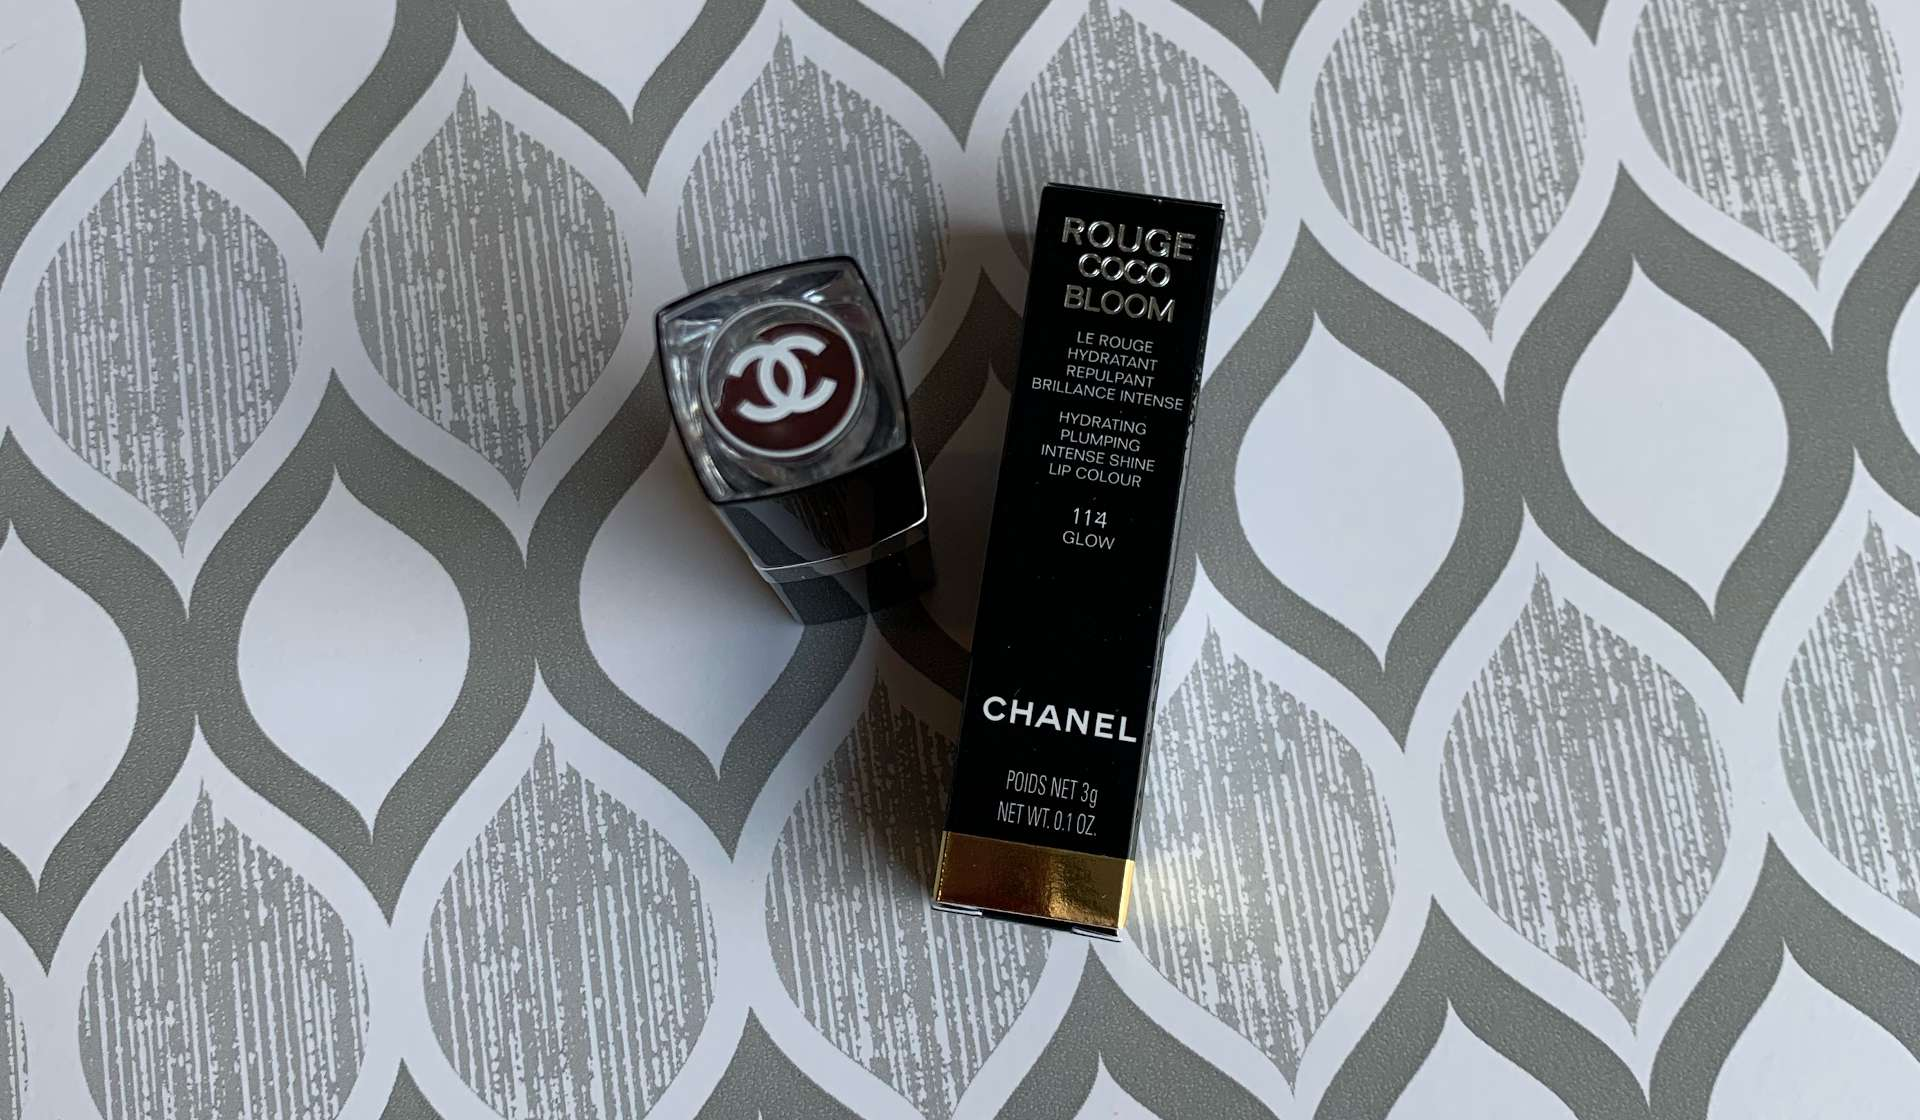 Chanel Rouge Coco Bloom 114 Glow Swatch